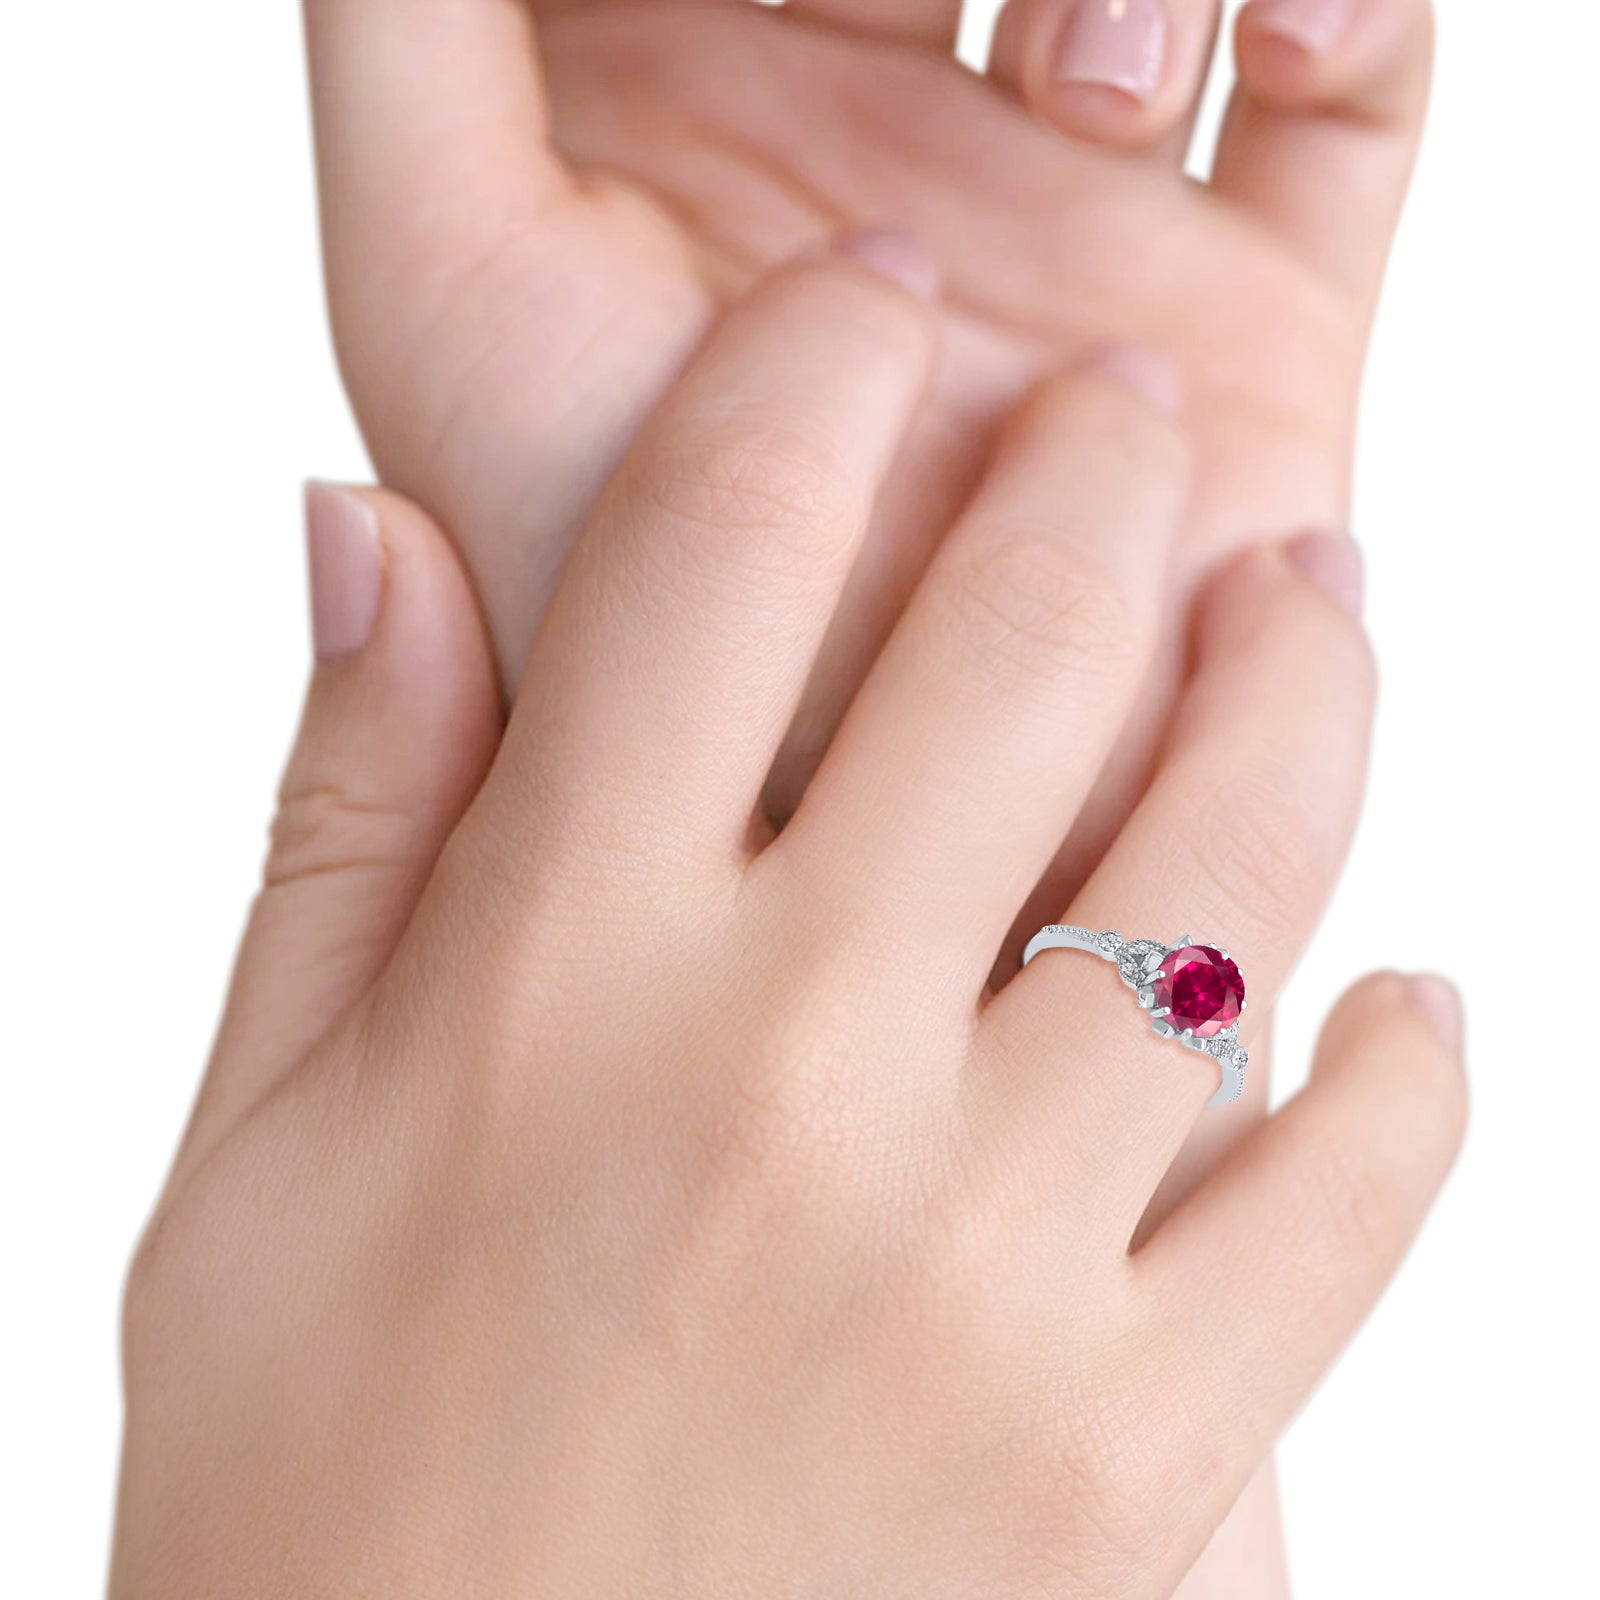 Art Deco Design Fashion Ring Round Simulated Ruby CZ 925 Sterling Silver